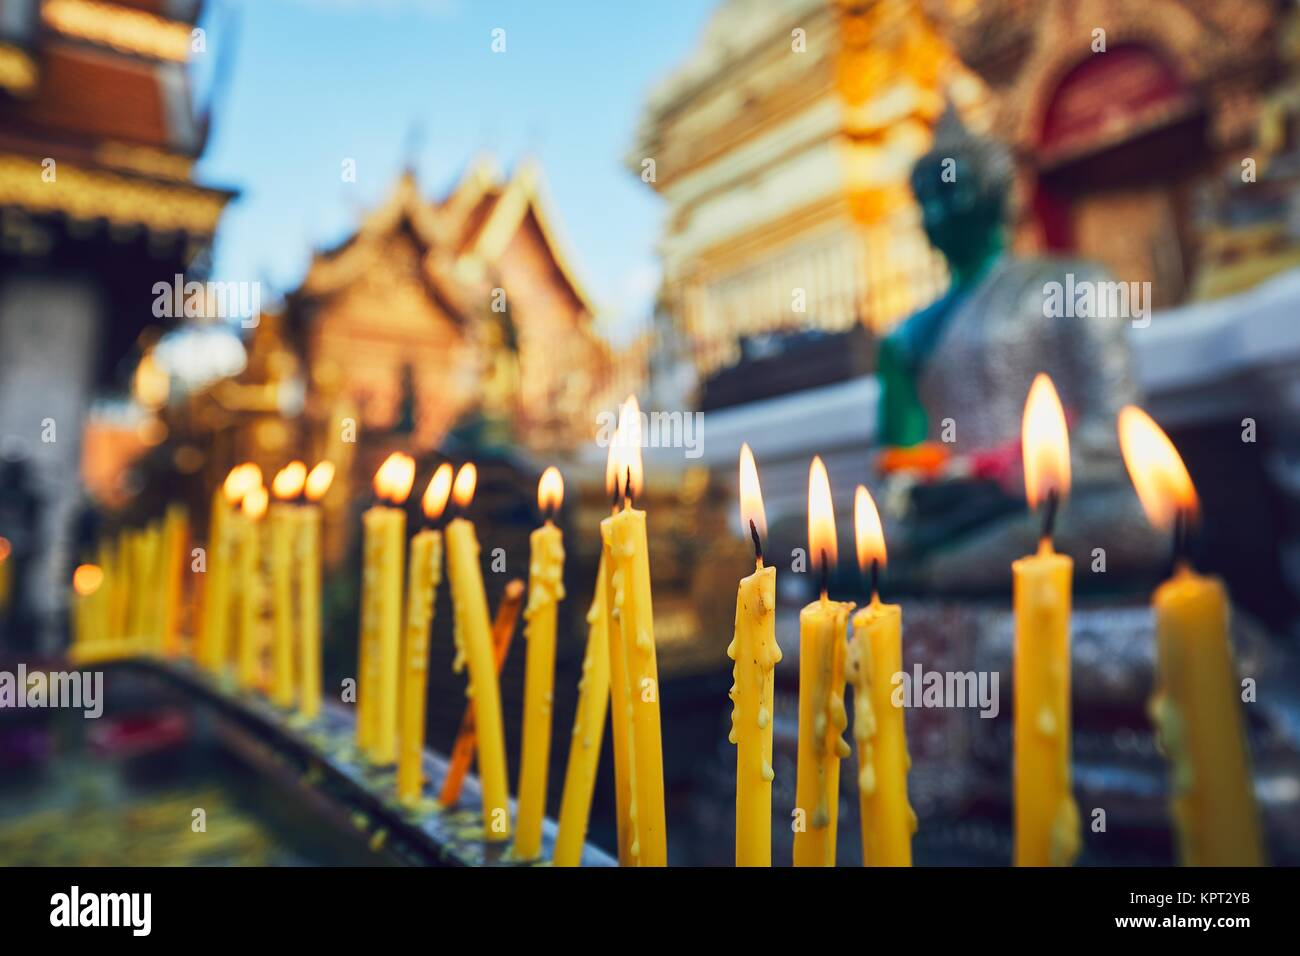 Buddhist Wat Phra That Doi Suthep Temple at the sunset. Tourists favorite landmark in Chiang Mai, Thailand. - Stock Image